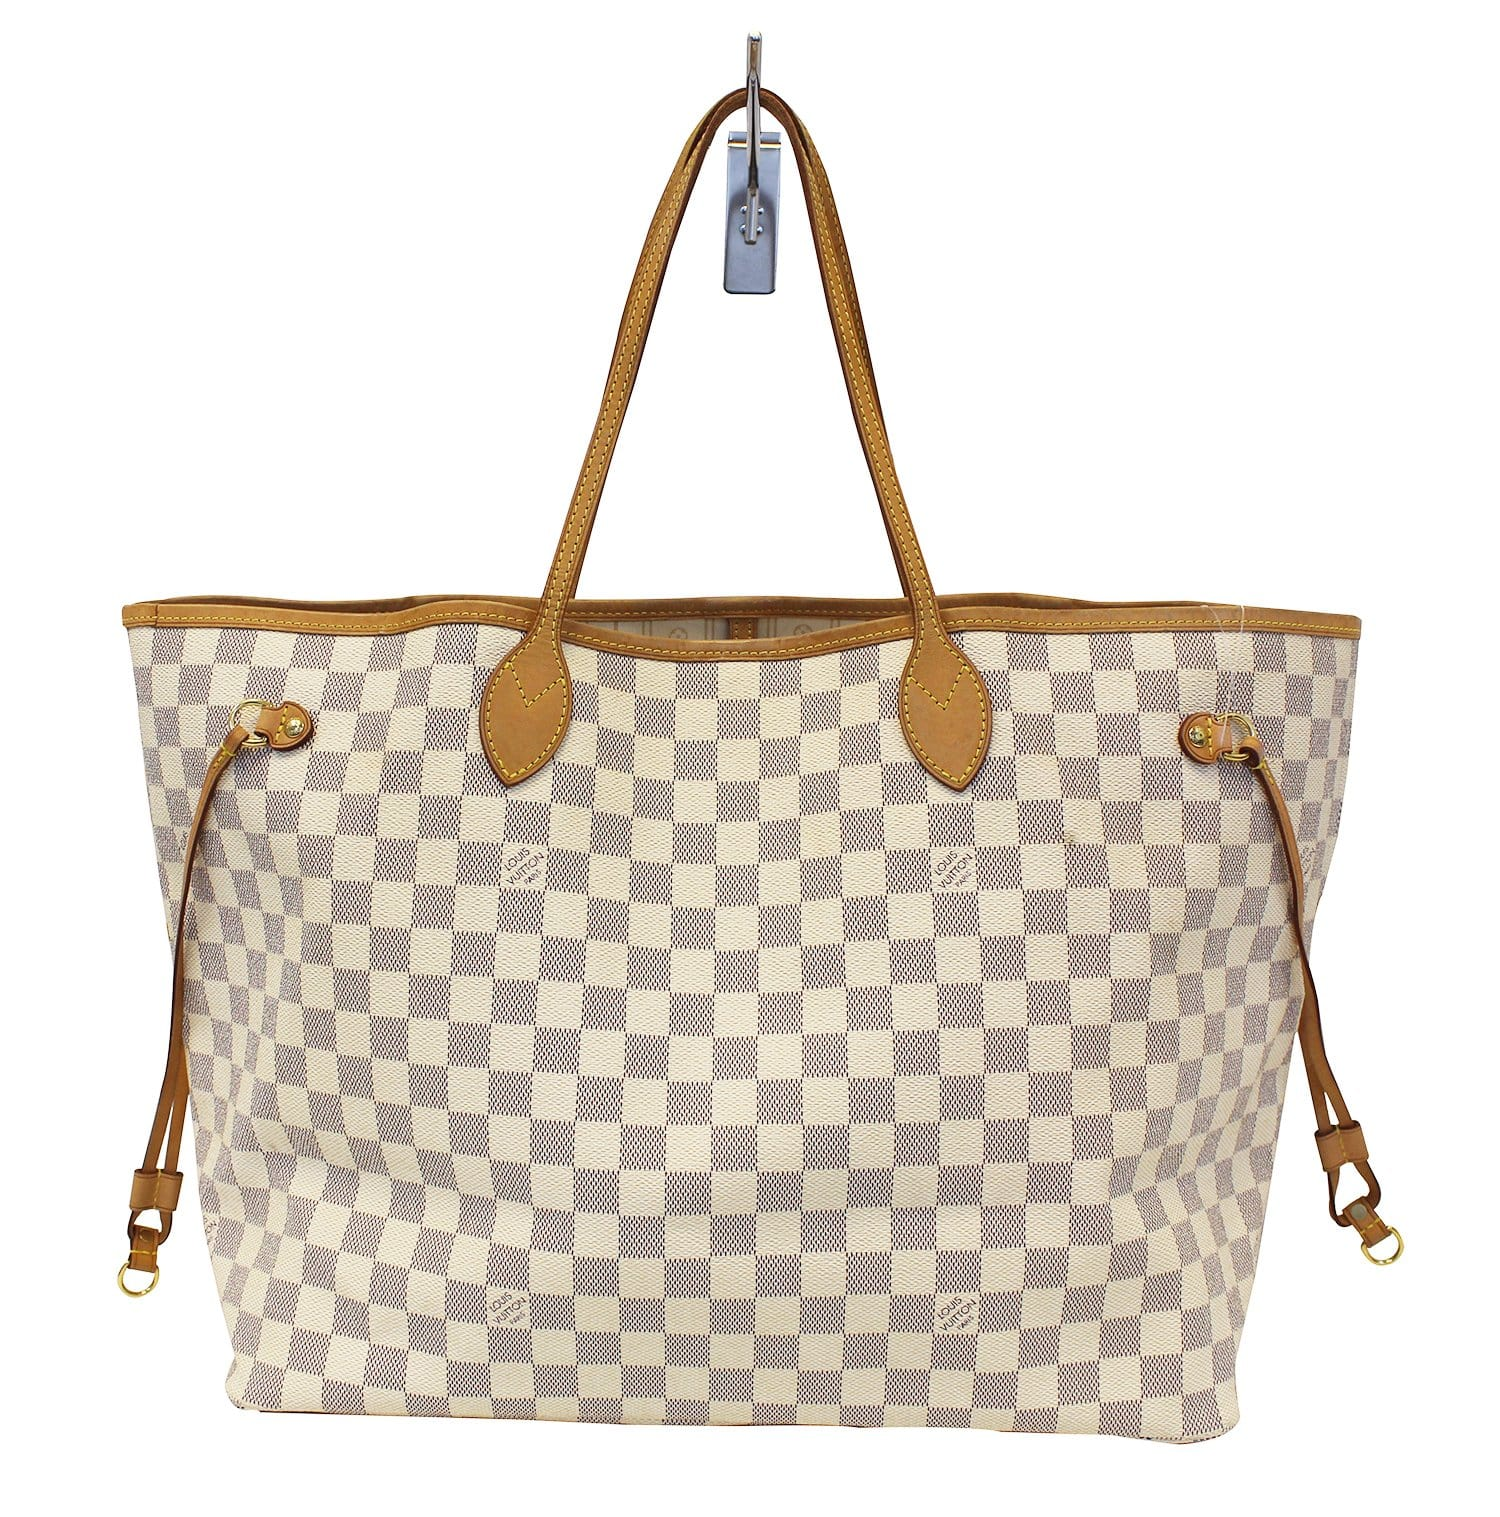 b4ce20613657 LOUIS VUITTON Damier Azur Neverfull GM White Tote Bag